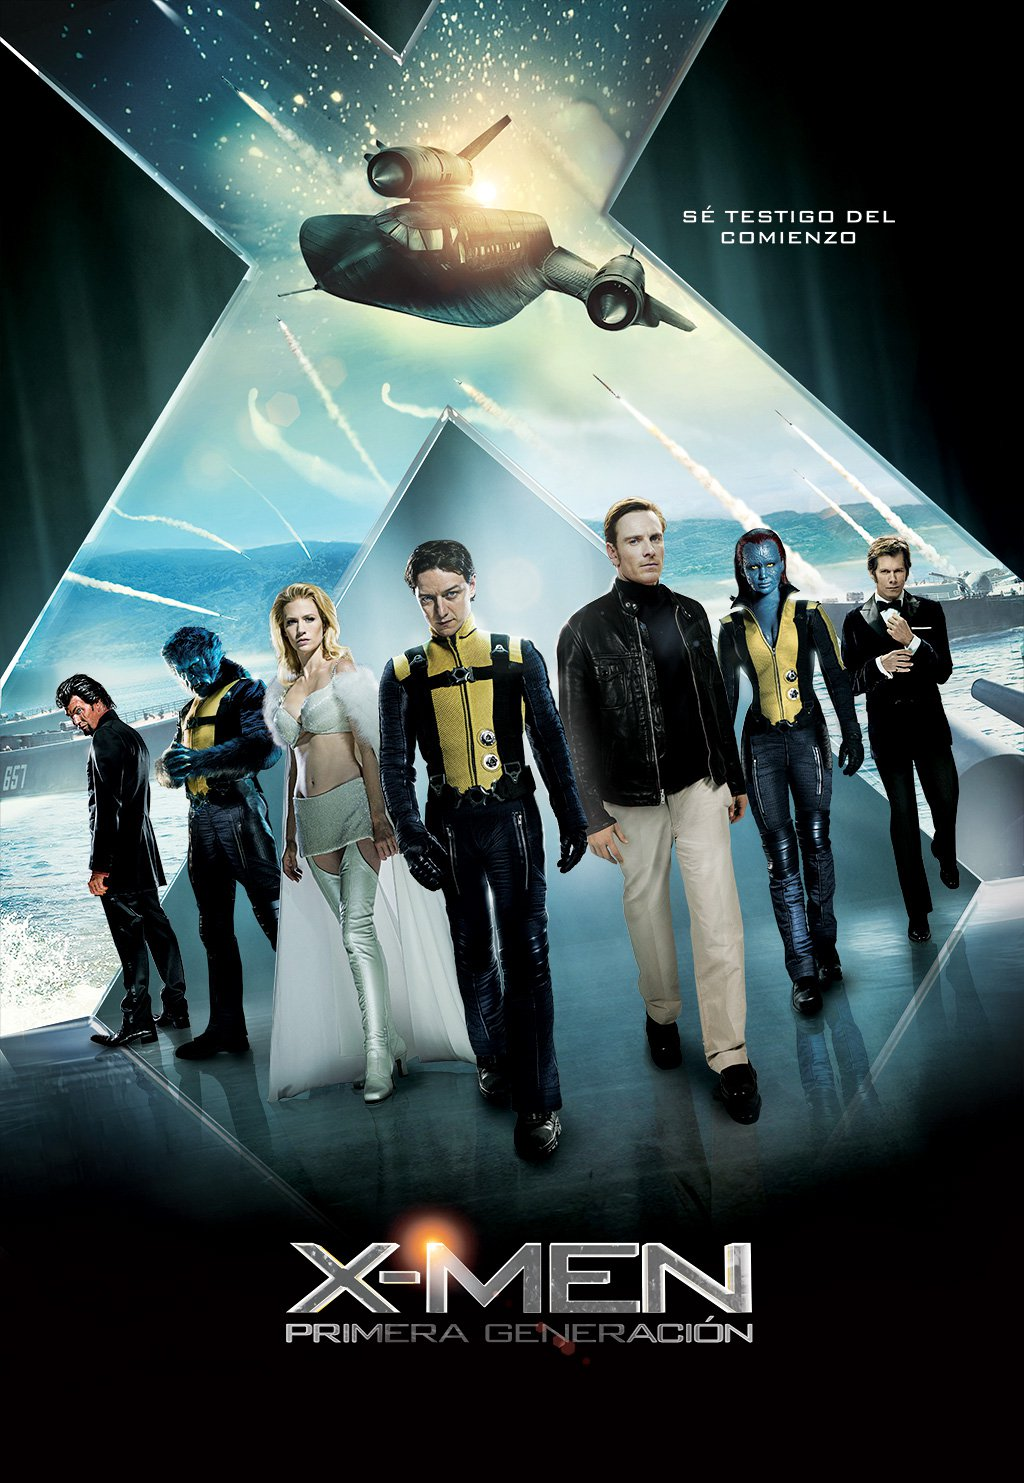 New X-Men First Class International Posters Relive X-Men TrilogyX Men First Class 2 Poster